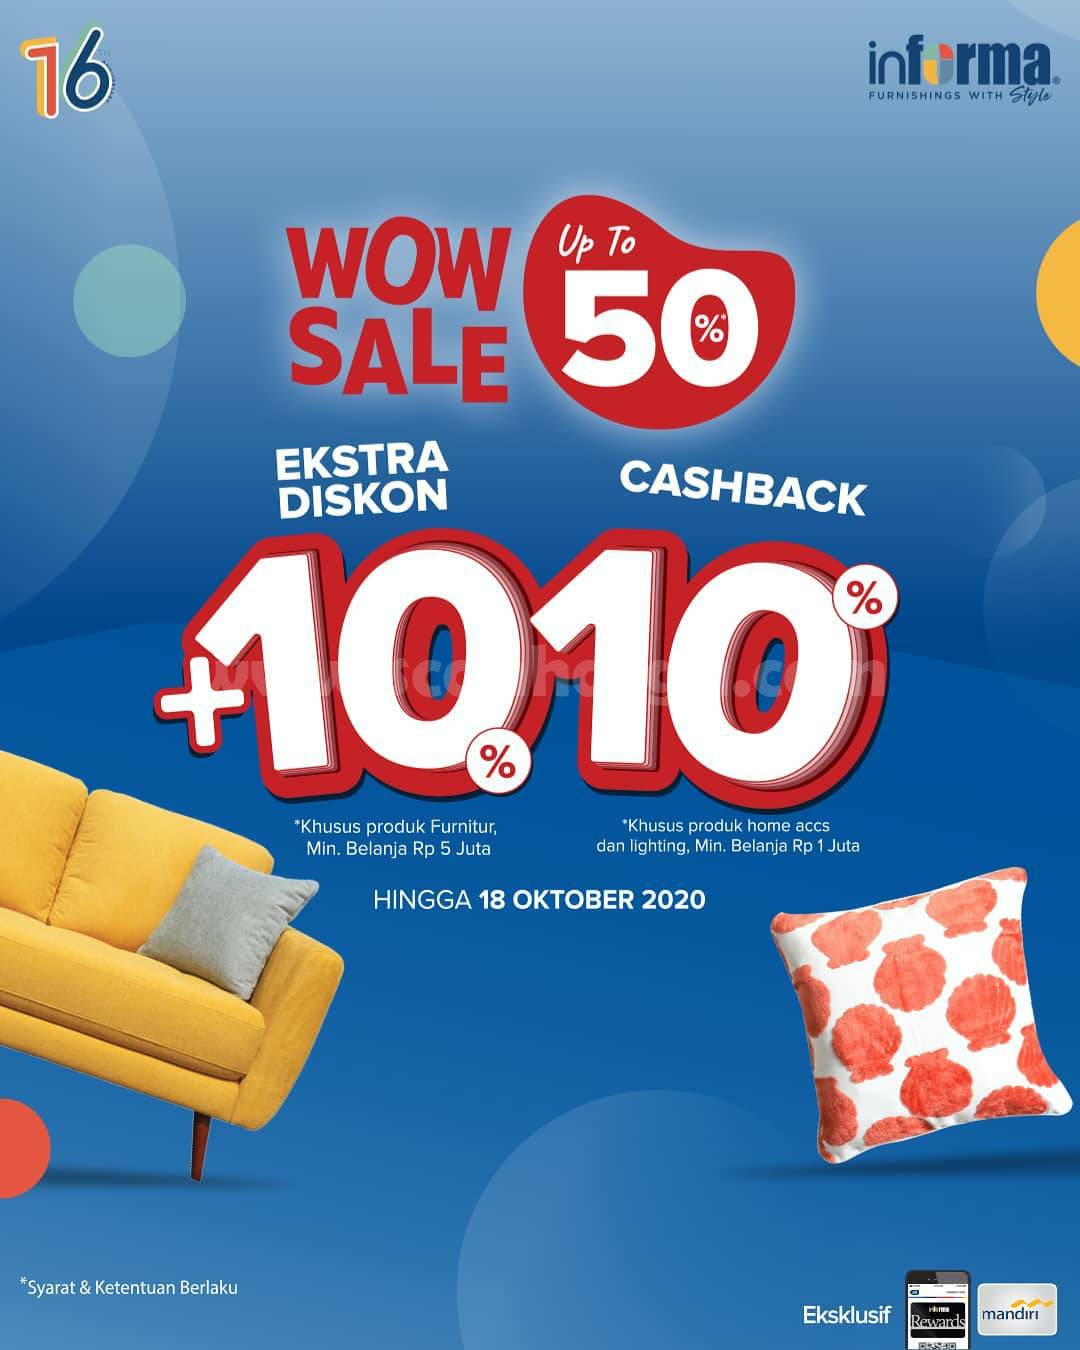 Promo Informa WOW SALE Up to 50% + Ekstra Diskon 10% dan Cashback 10%